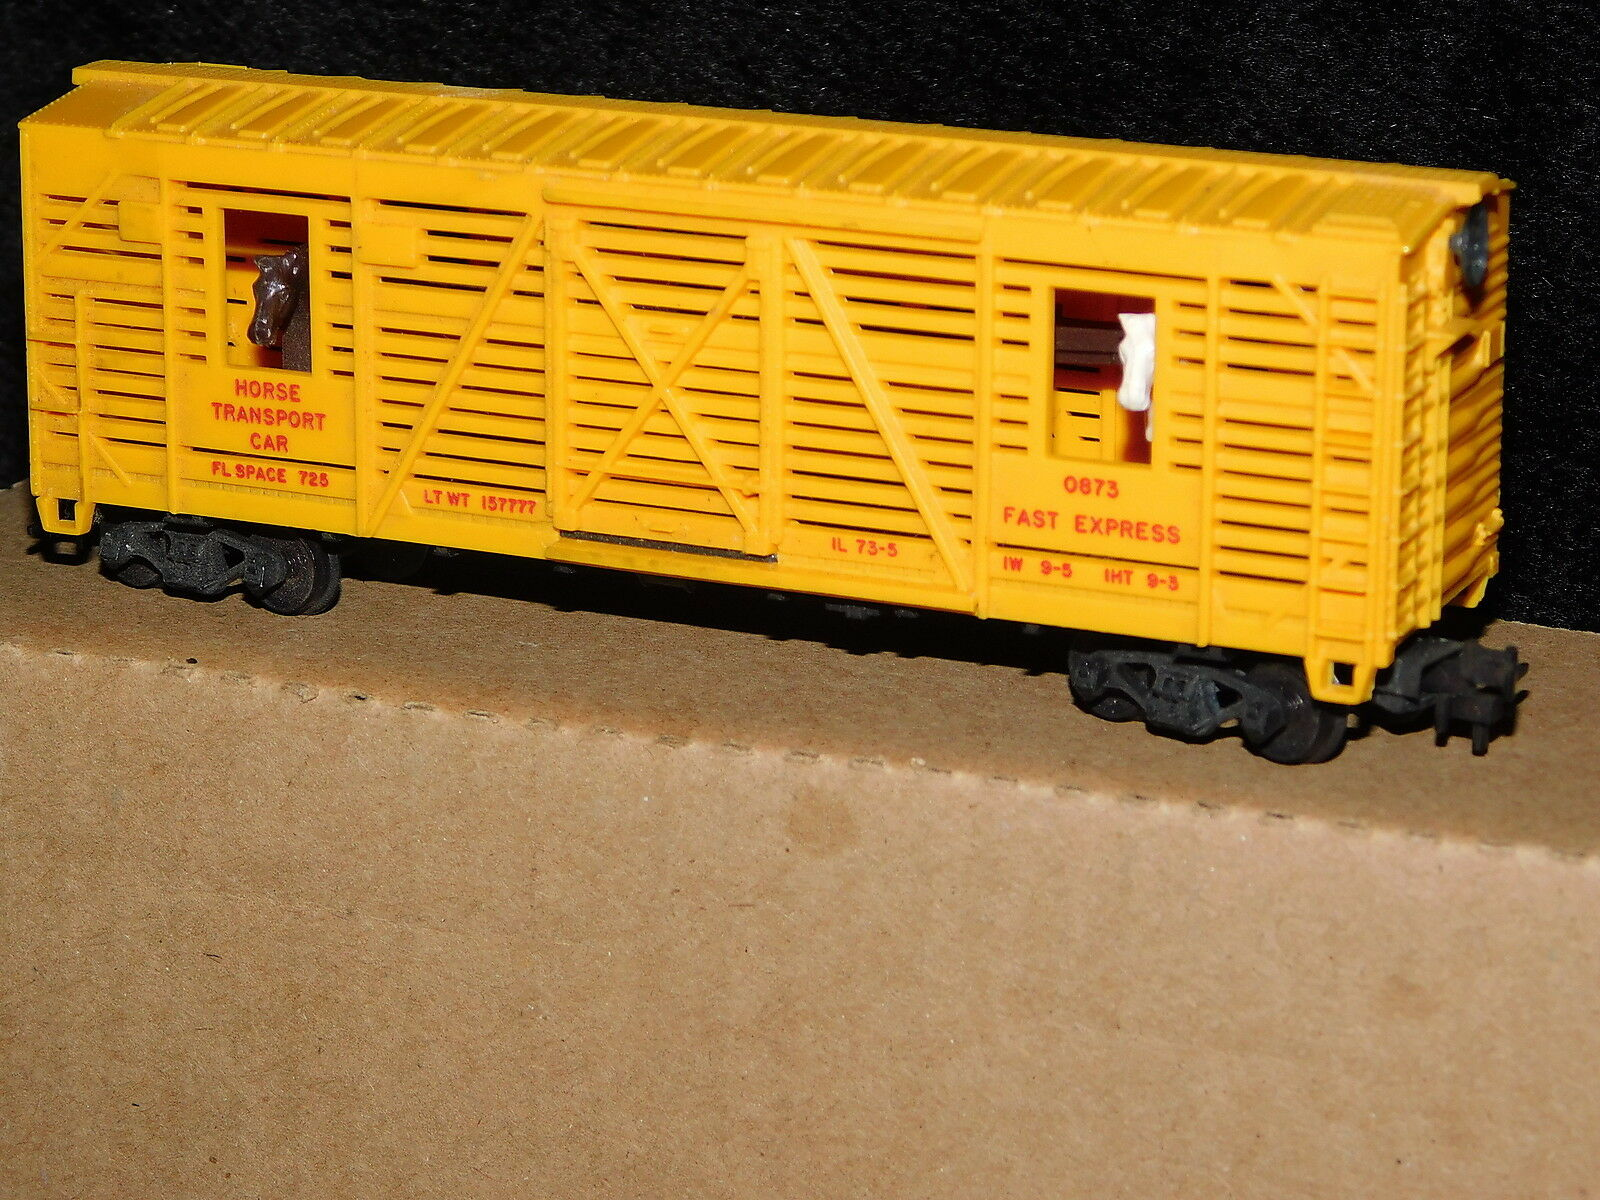 LIONEL  OPERATING  HORSE TRANSPORT CAR made in USA HO Scale Trainmint